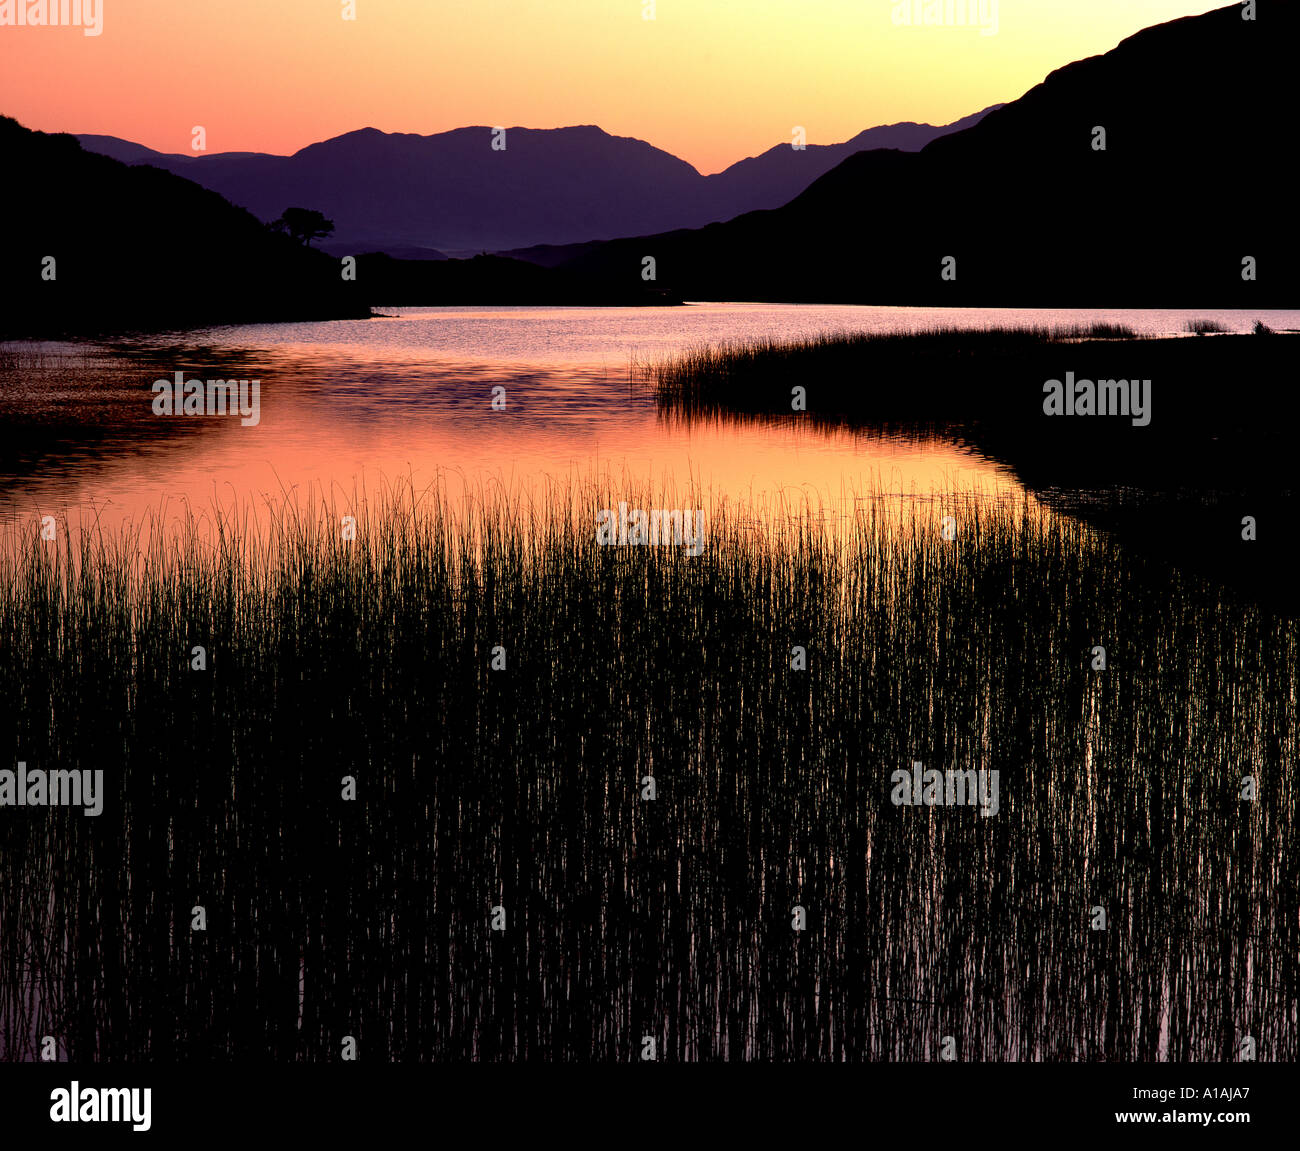 Kylemore Lough Connemara Co Galway Ireland - Stock Image